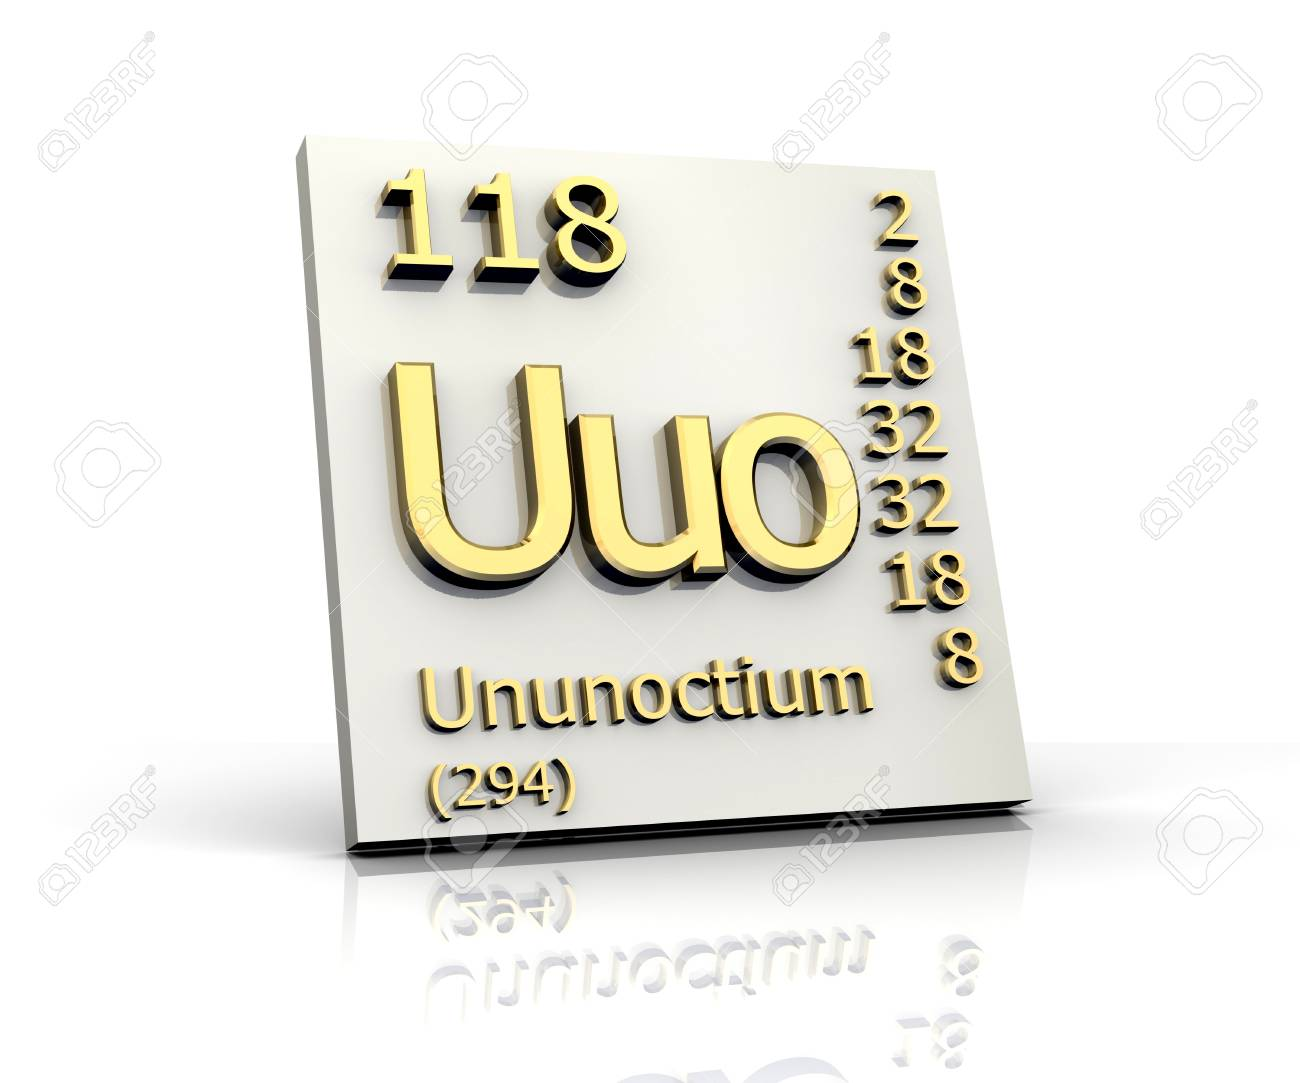 Ununoctium from periodic table of elements 3d made stock photo stock photo ununoctium from periodic table of elements 3d made urtaz Images